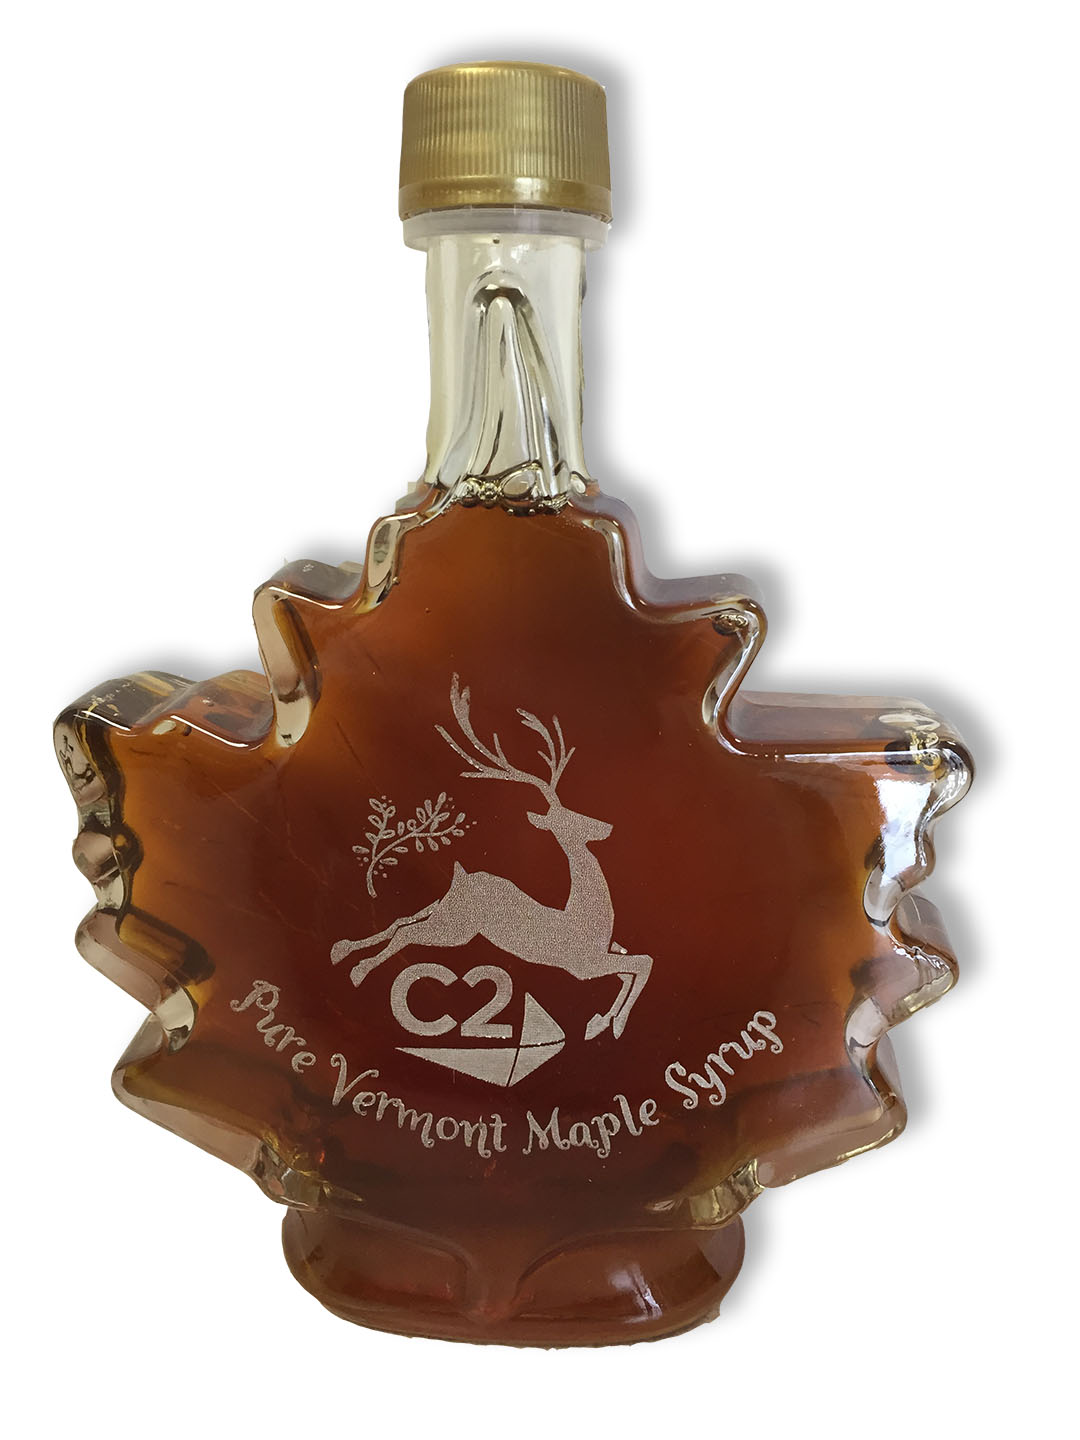 Branded Maple Syrups